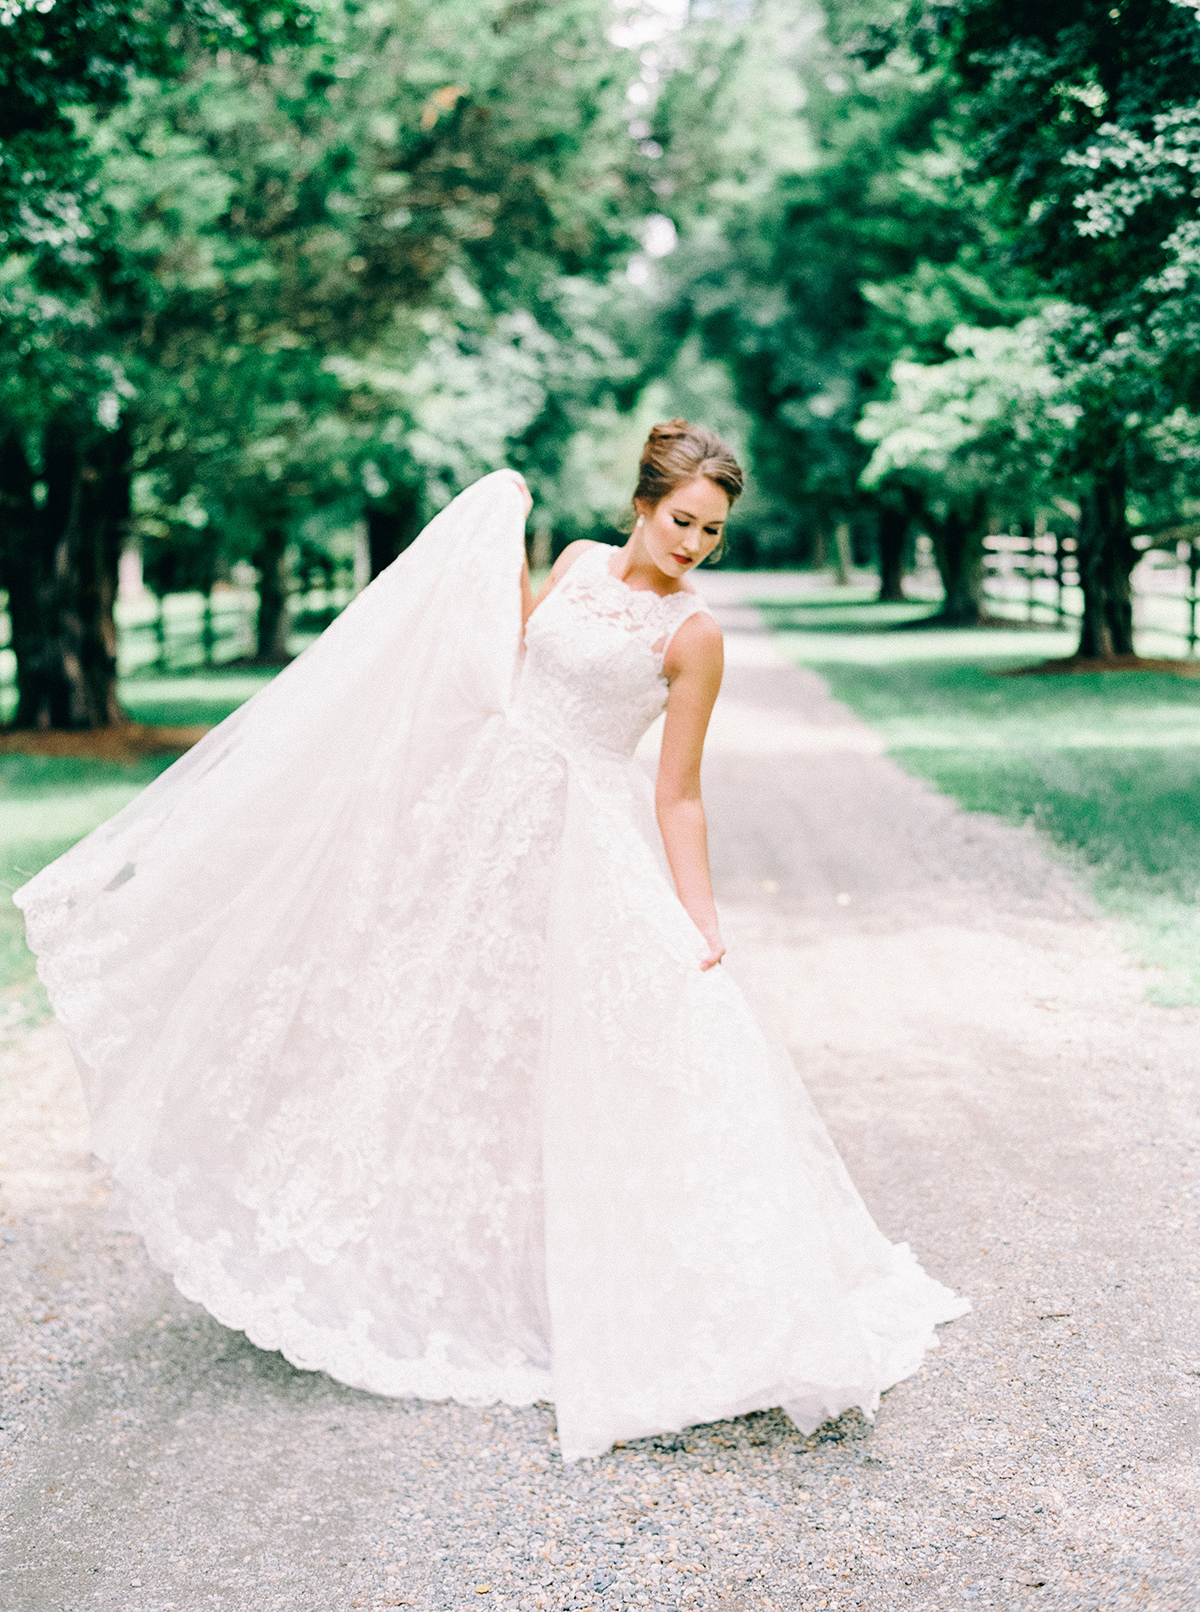 Wedding Dresses Under $2,000 from David's Bridal | Photo by Nikki Santerre for Aisle Society